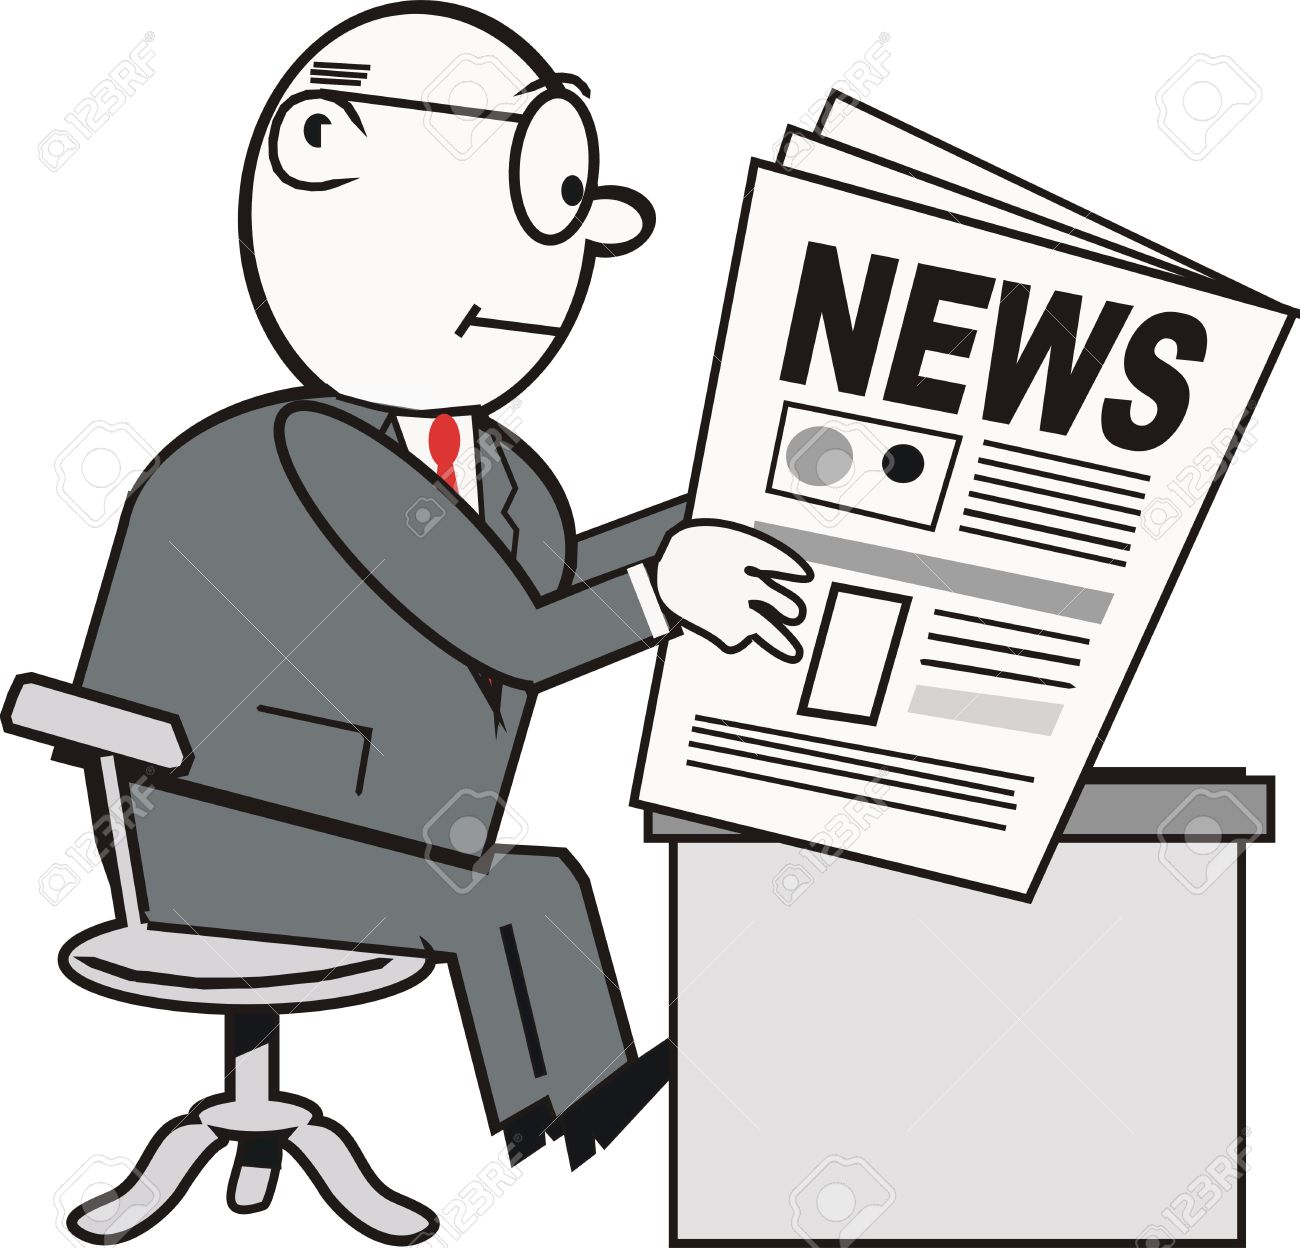 businessman reading newspaper cartoon royalty free cliparts, vectors